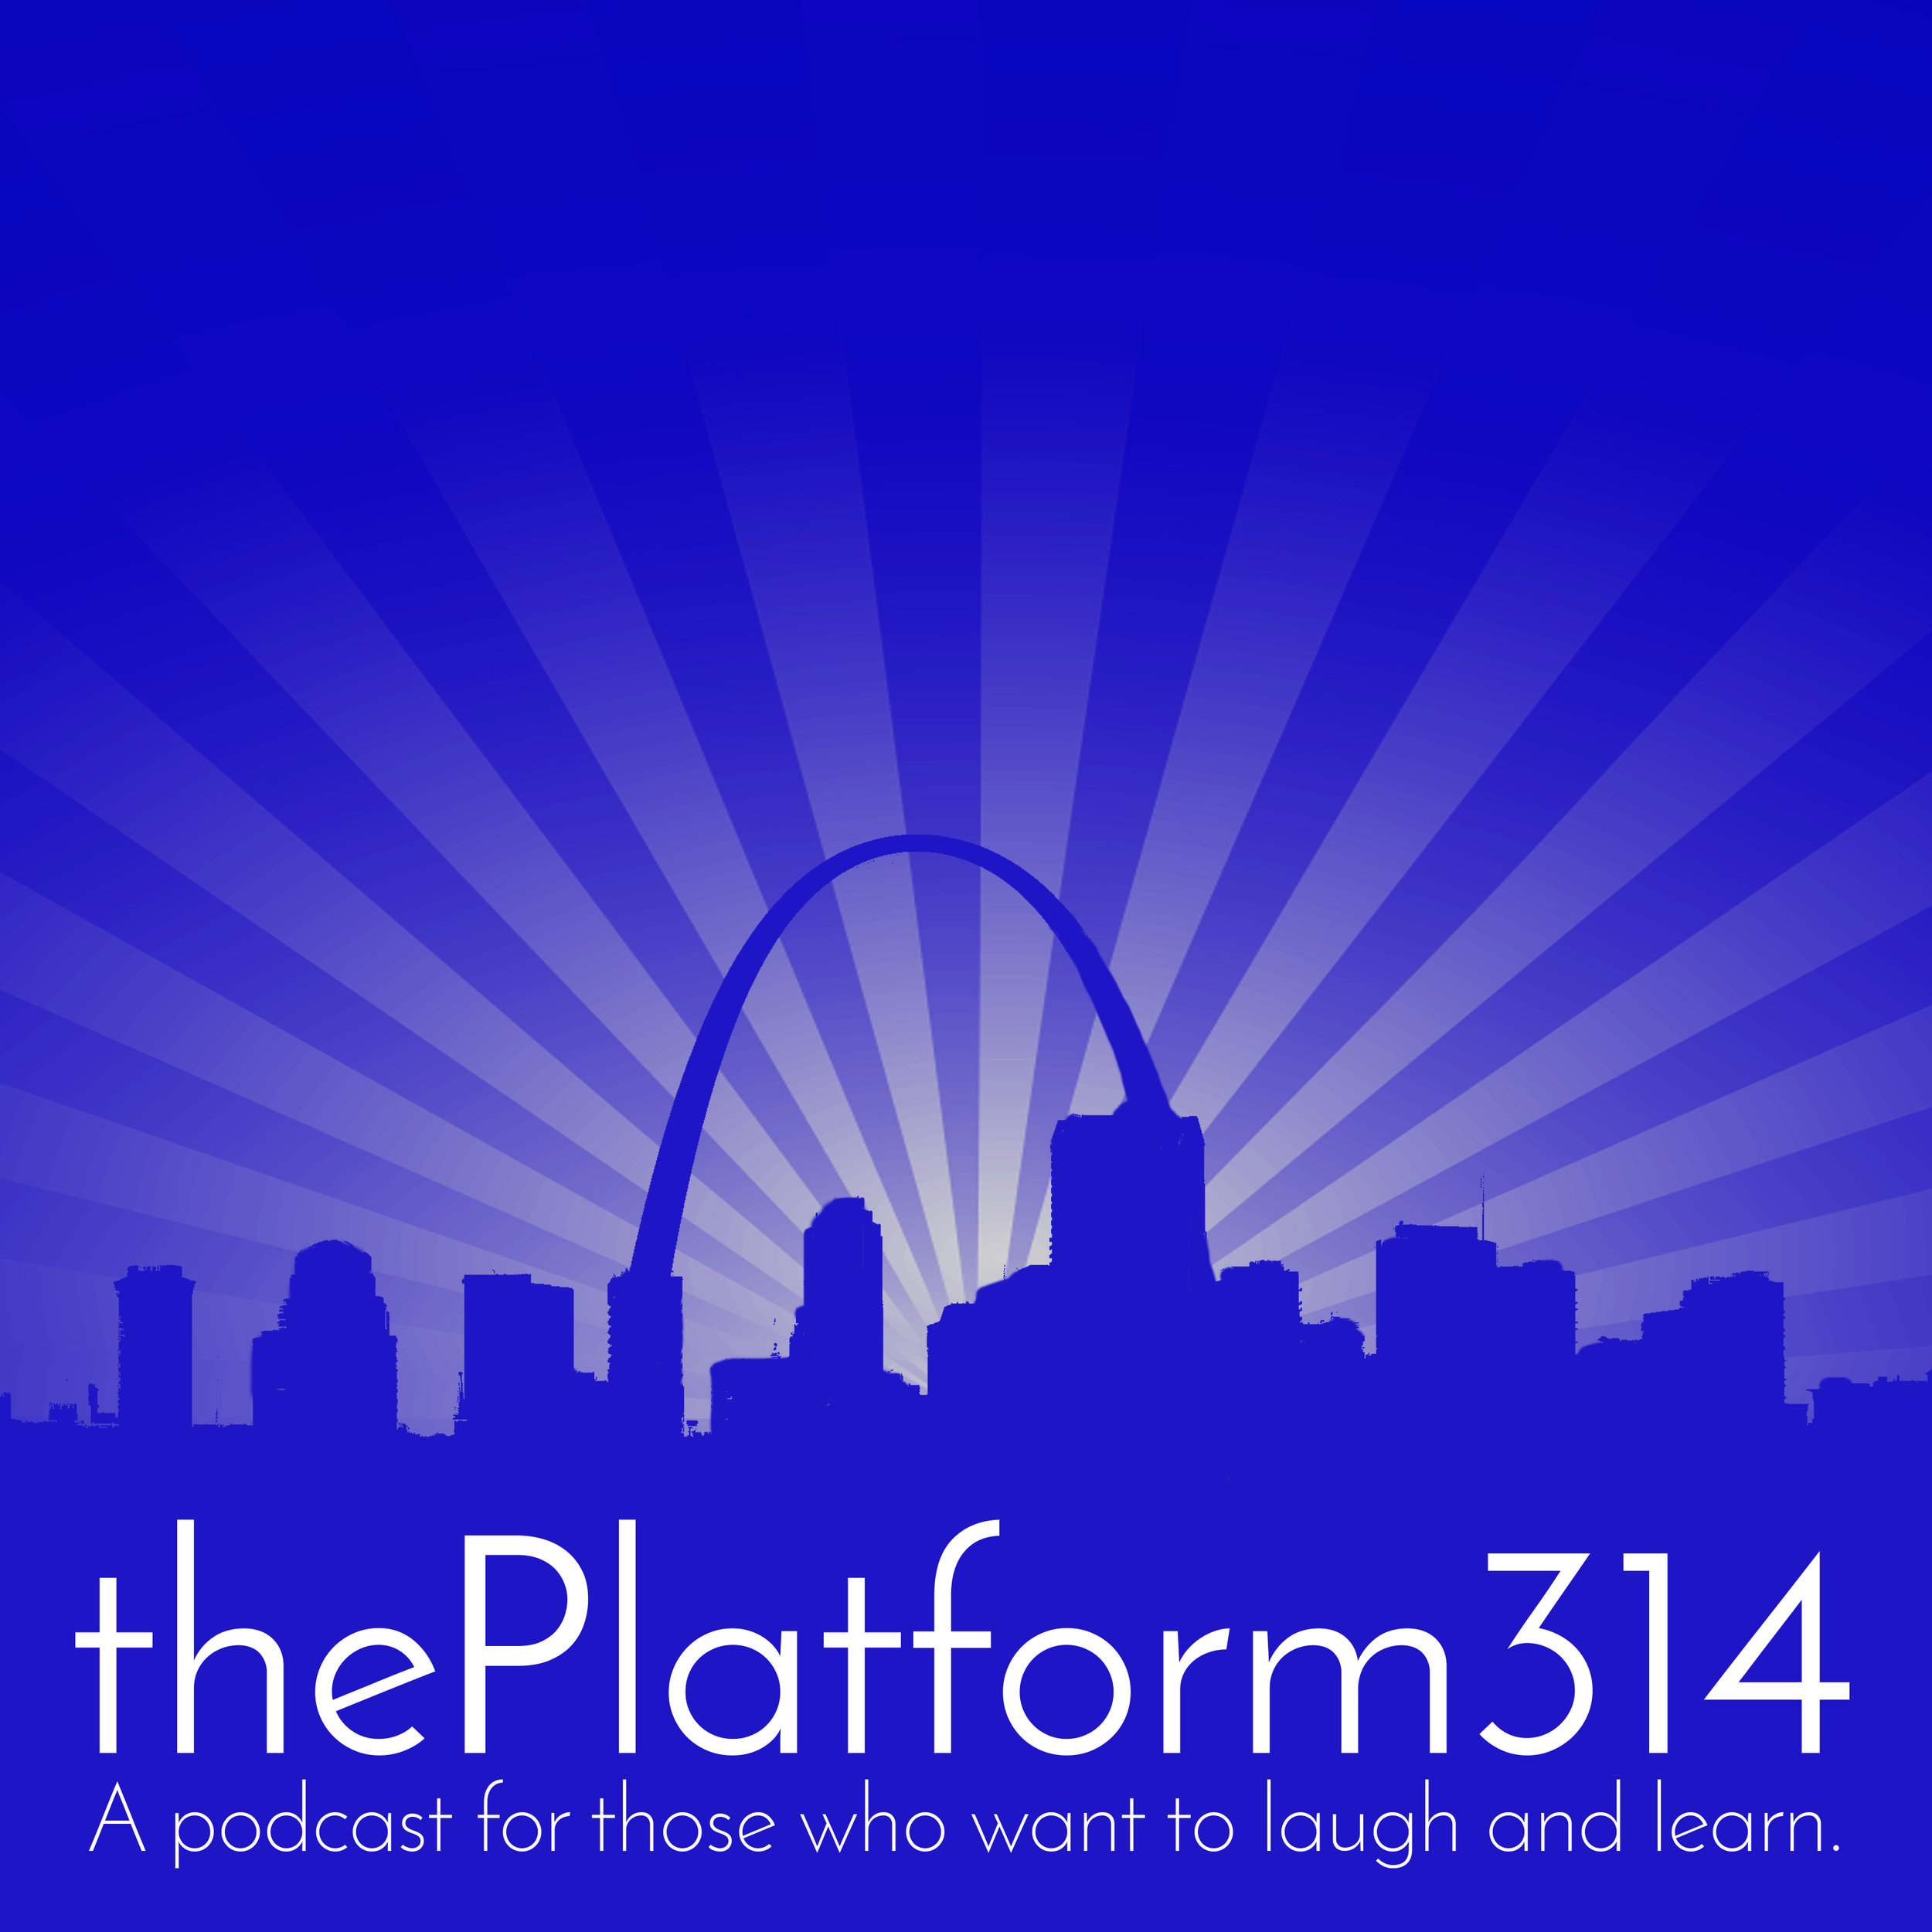 theplatform314 podcast - hosted by J.J.and FaiththePlatform314 is an exciting place to be! Hosts J.J. and Faith deliver fun and informative content ranging from social issues, popular culture, business, and regular everyday topics, with the goal of inspiring personal and professional growth.